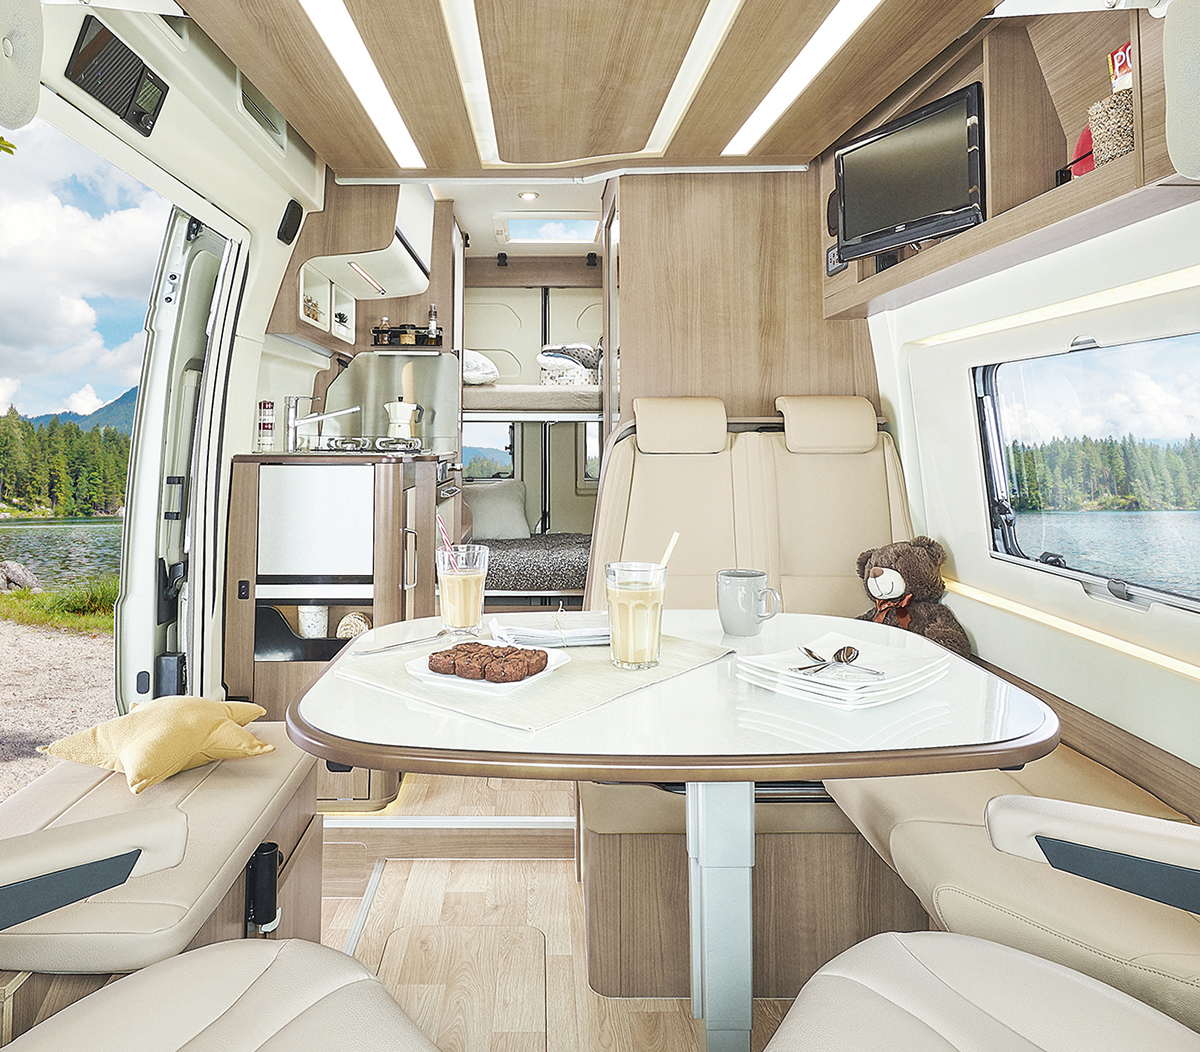 NEW 2021 Dreamer Family Van Select Motorhome by Rapido, Rear Bunk Beds & Jack Assisted Drop Down ...